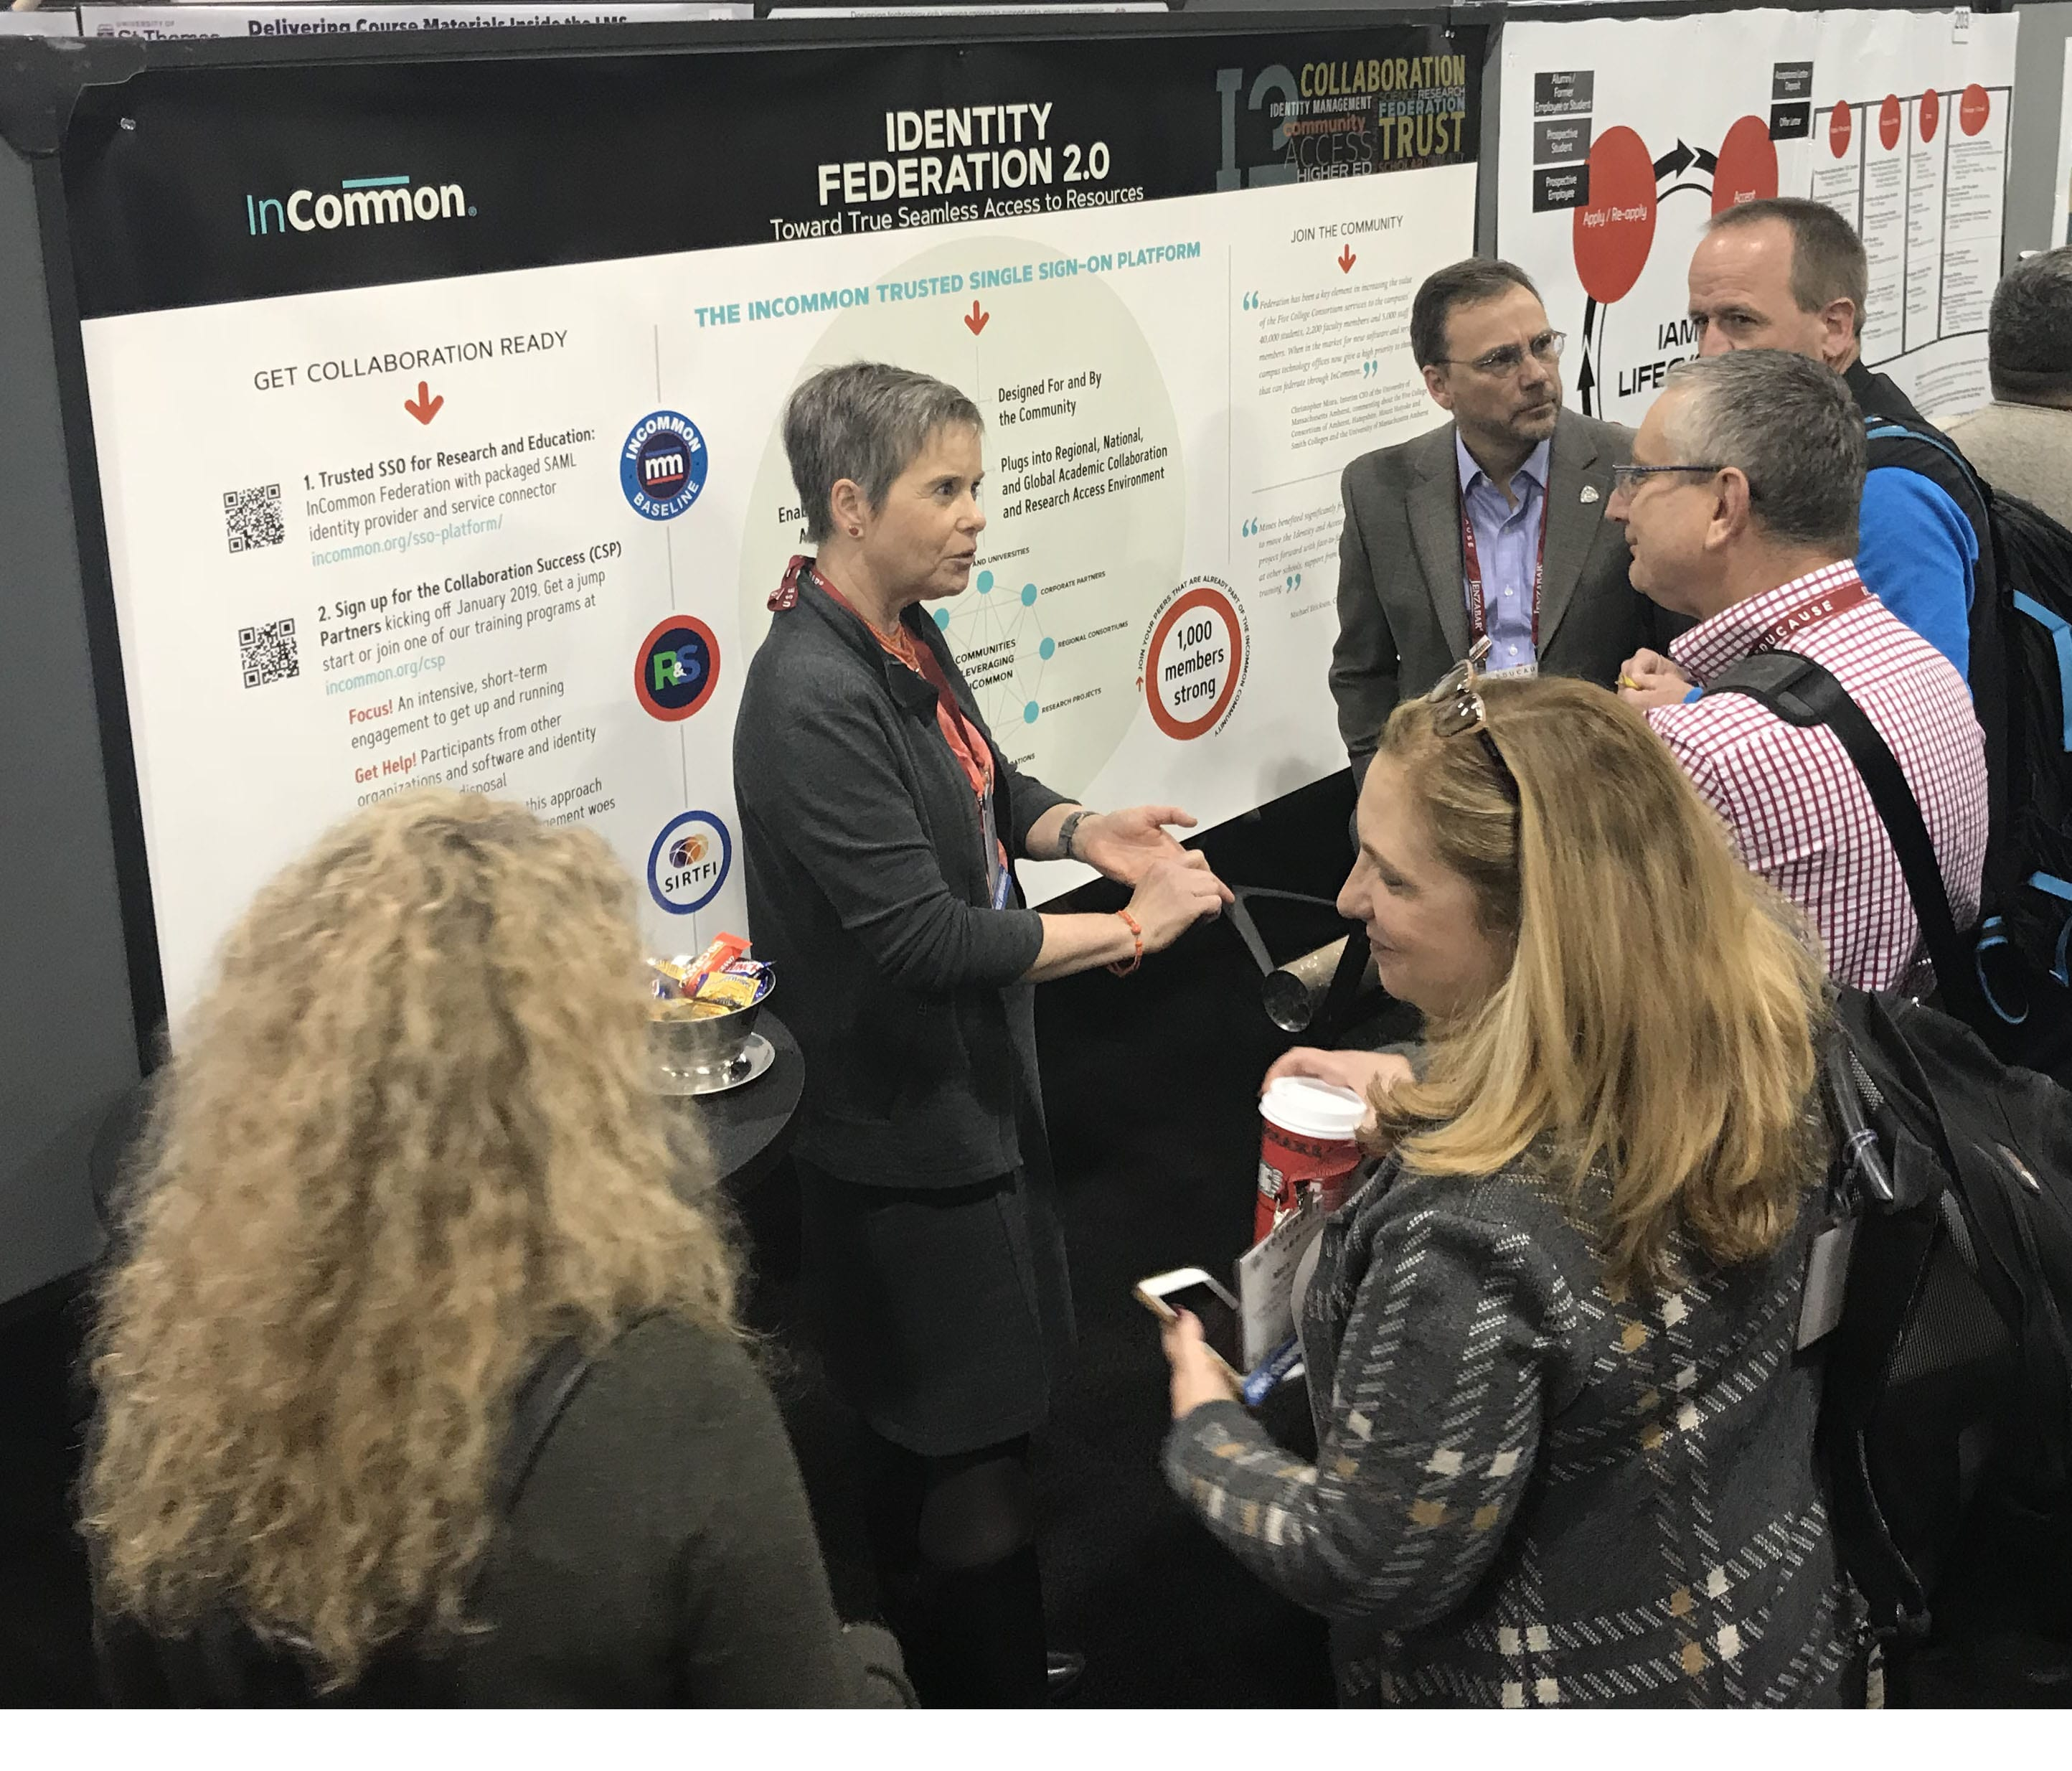 Ann West and Mike Erickson present a poster session at 2018 EDUCAUSE conference.